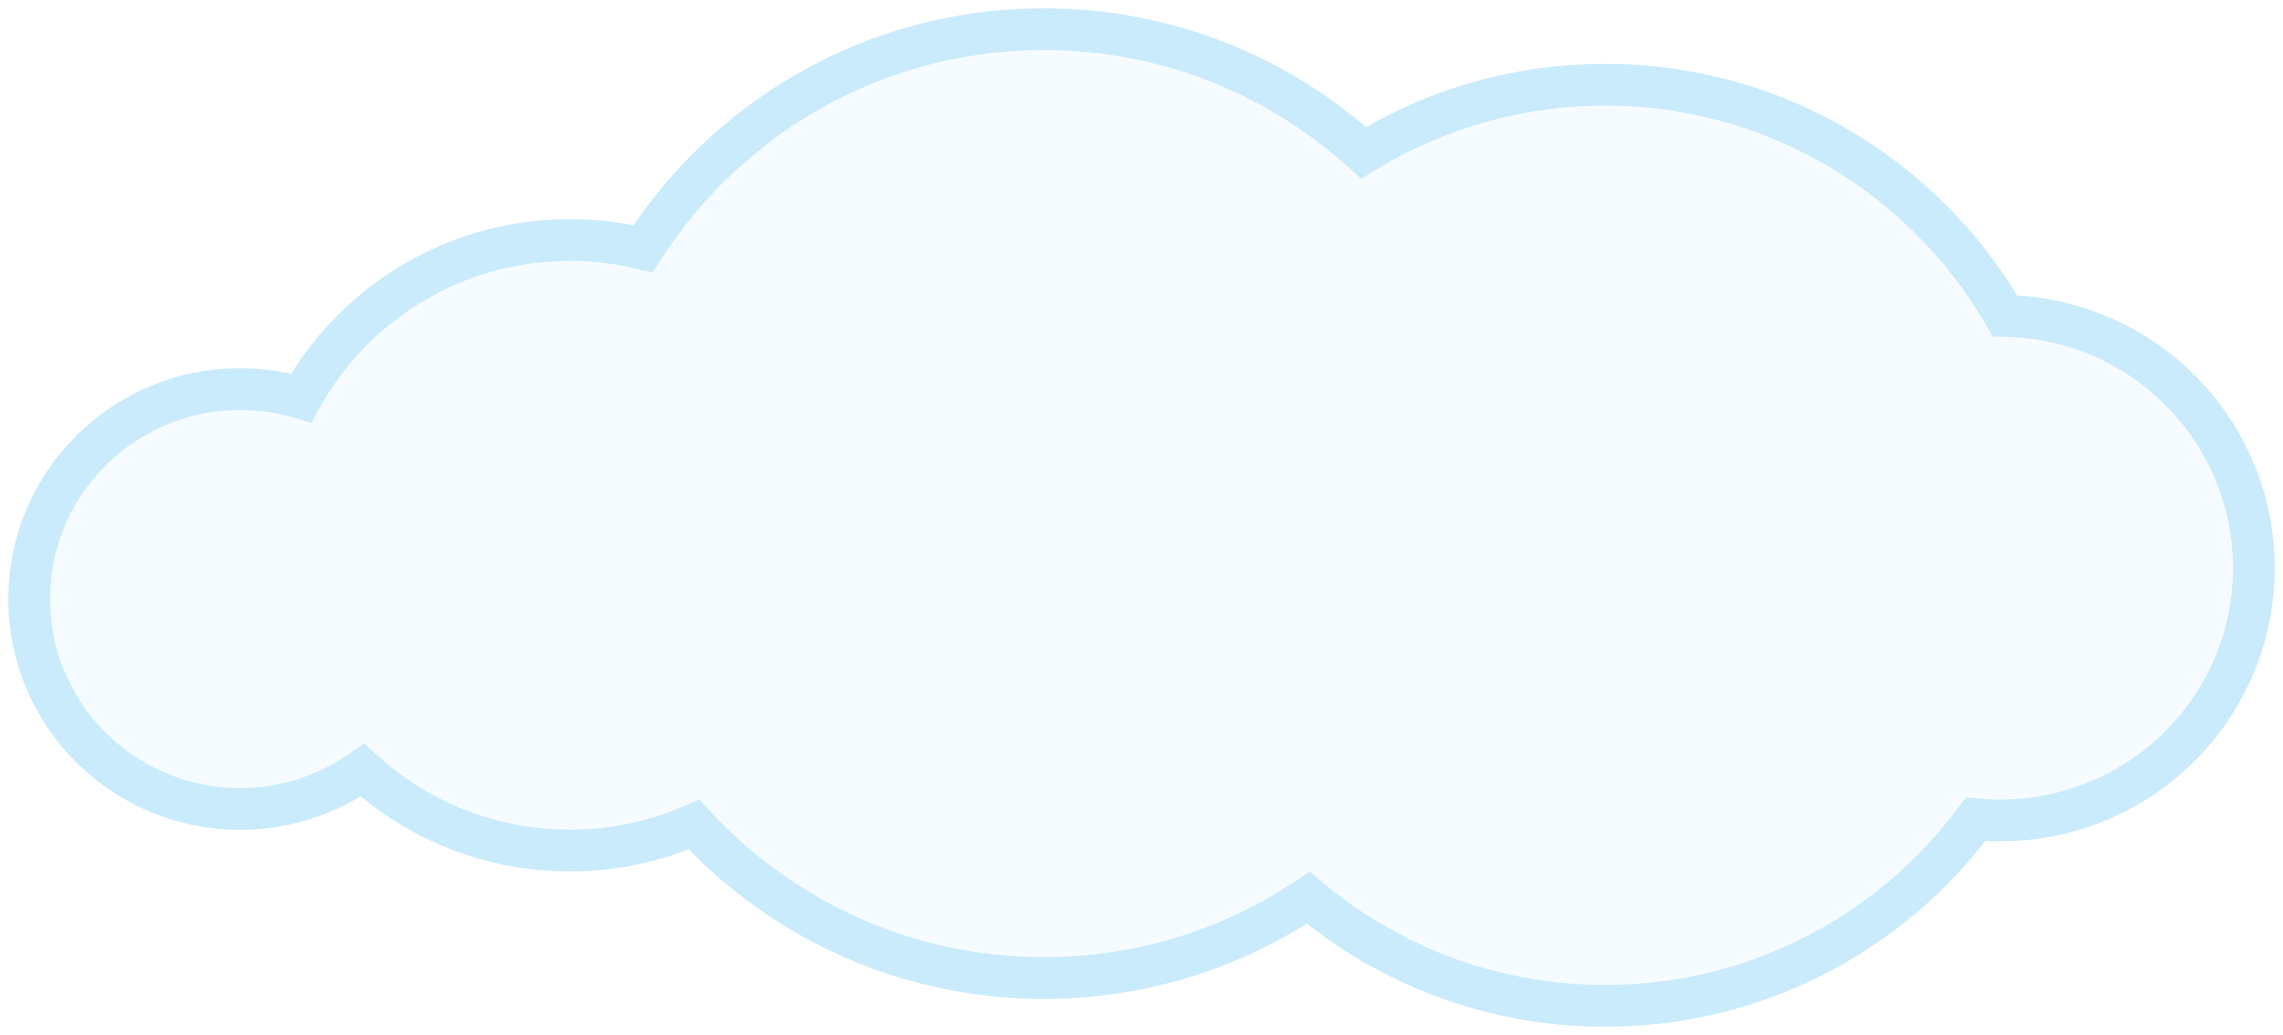 Cloud png vector. Something fishy resources images